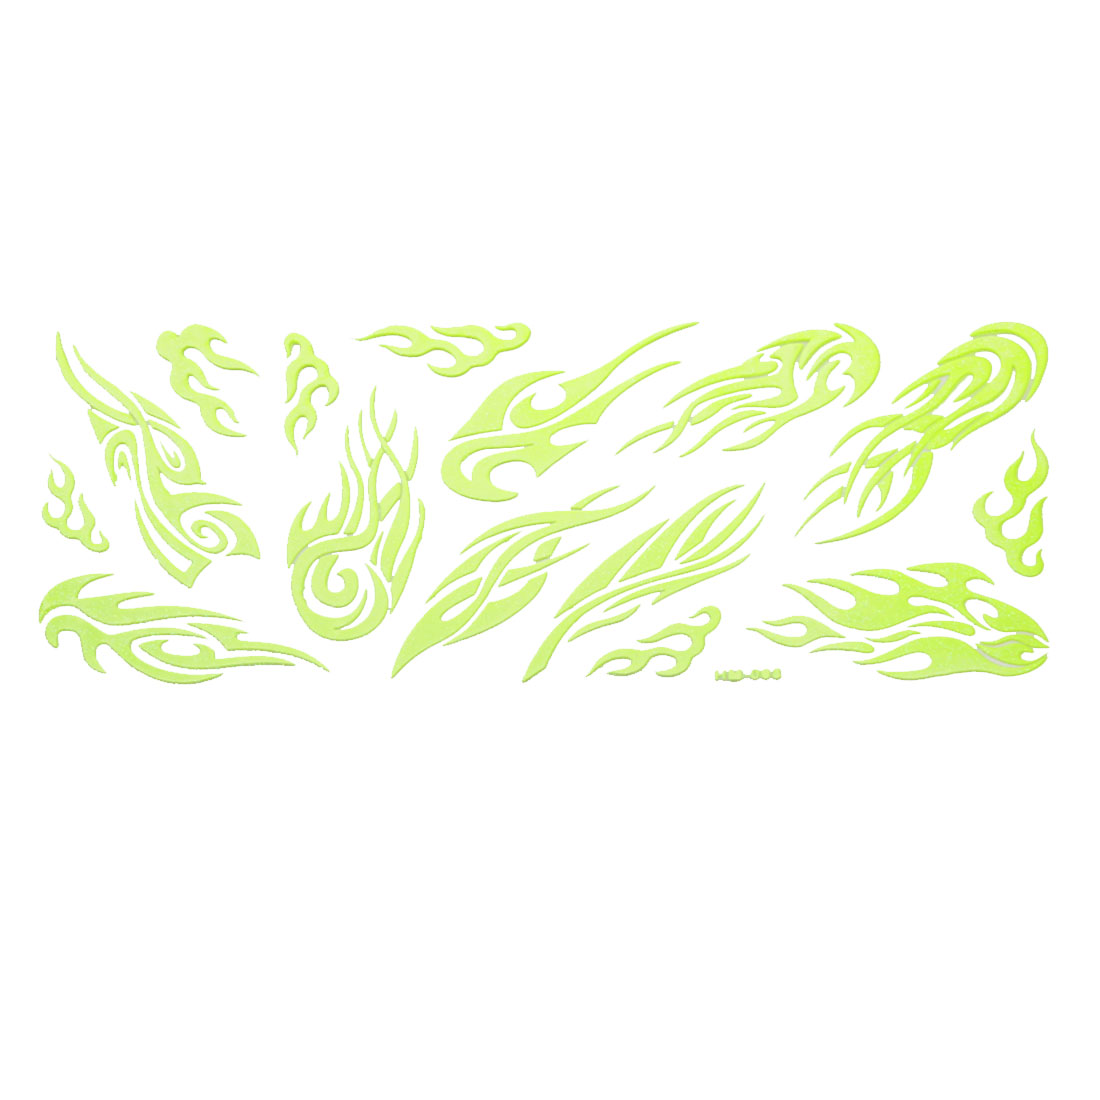 Wall Decor Blaze Design Light Green Luminous Stickers 15 in 1 Set